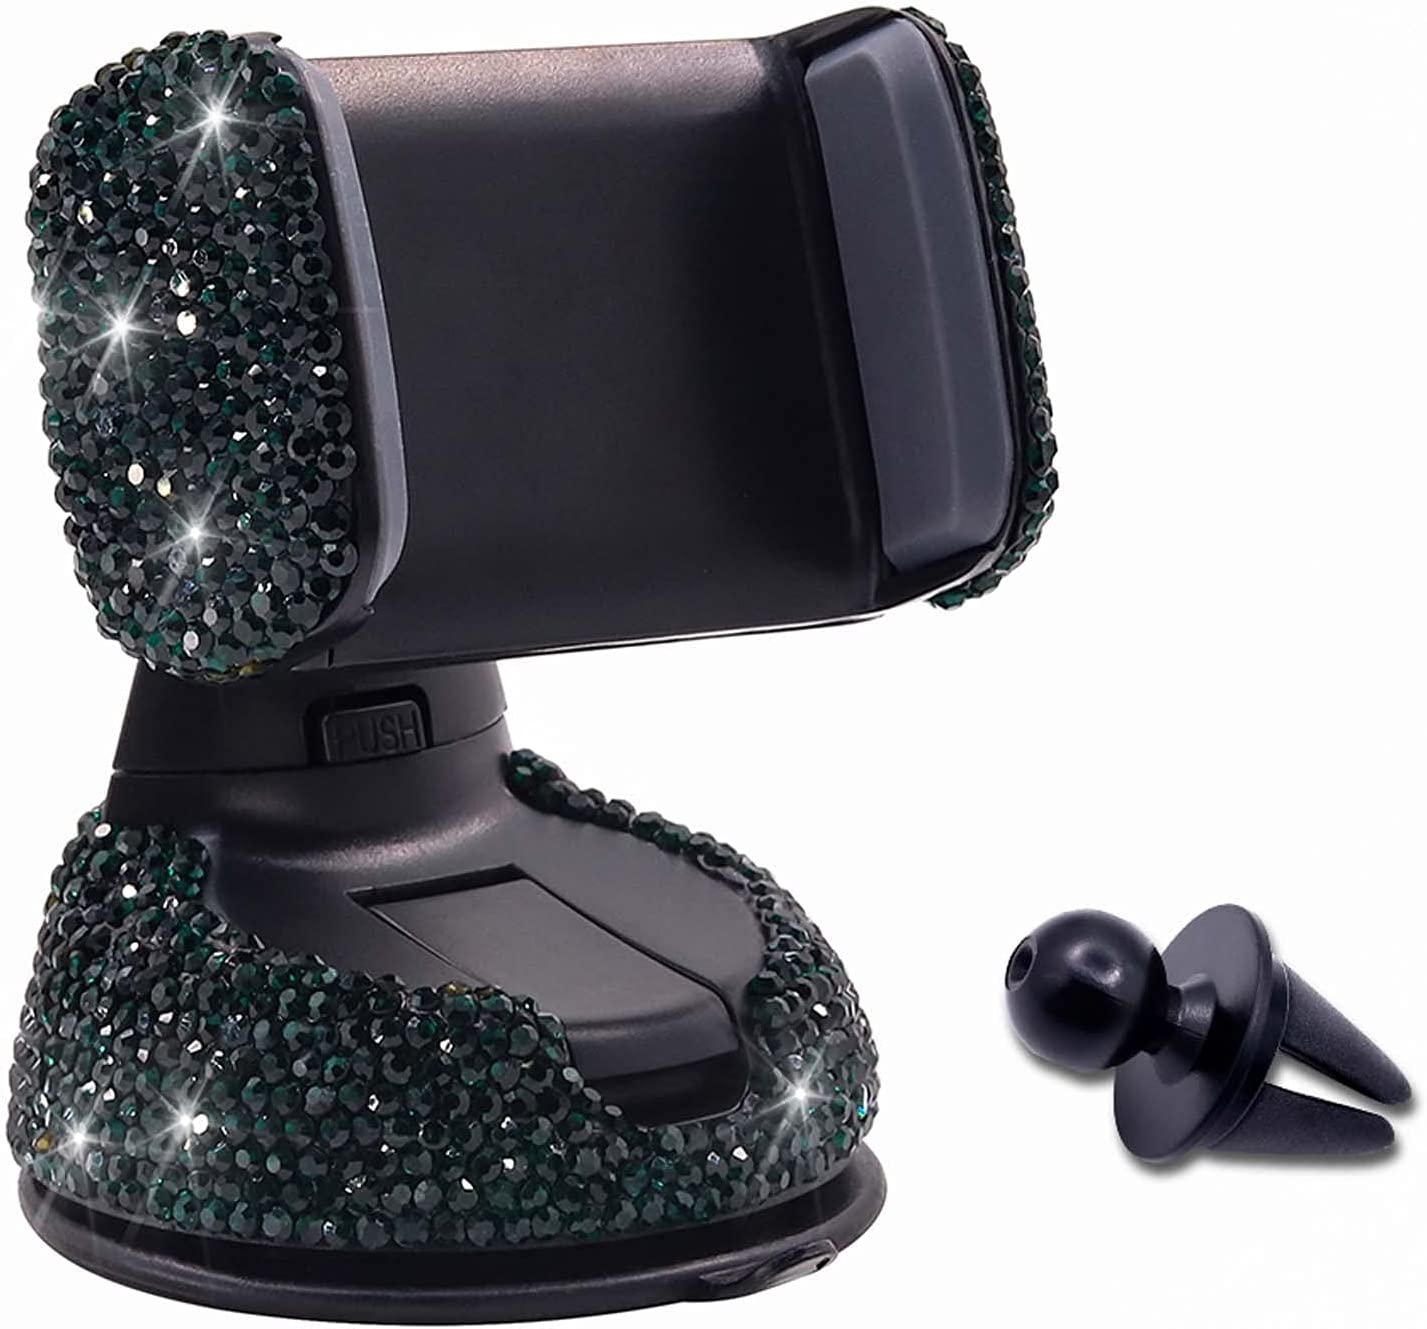 Bling Rhinestone Car Phone Holder Windshield Dashboard Mount Adjustable Phone Holder for Easy View GPS Screen Compatible with iPhone 5 6s 7 8s 9 10 SE XS XR S20 (Green)